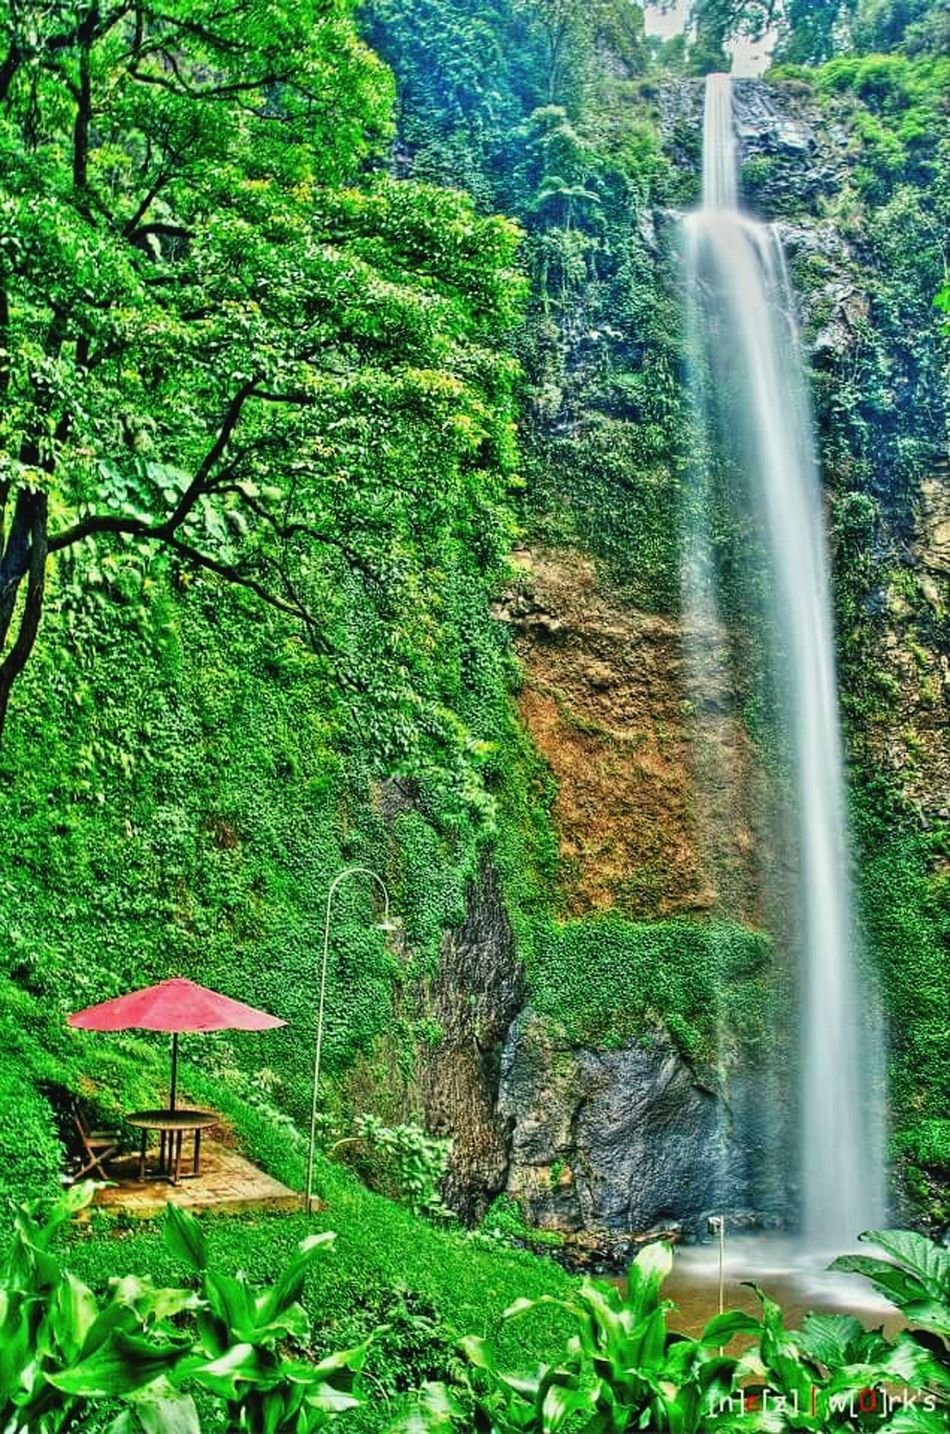 Curugcimahiindonesia First Eyeem Photo 43 Golden Moments Feel The Journey Visitindonesia Waterfall Nature Beautifulplaces